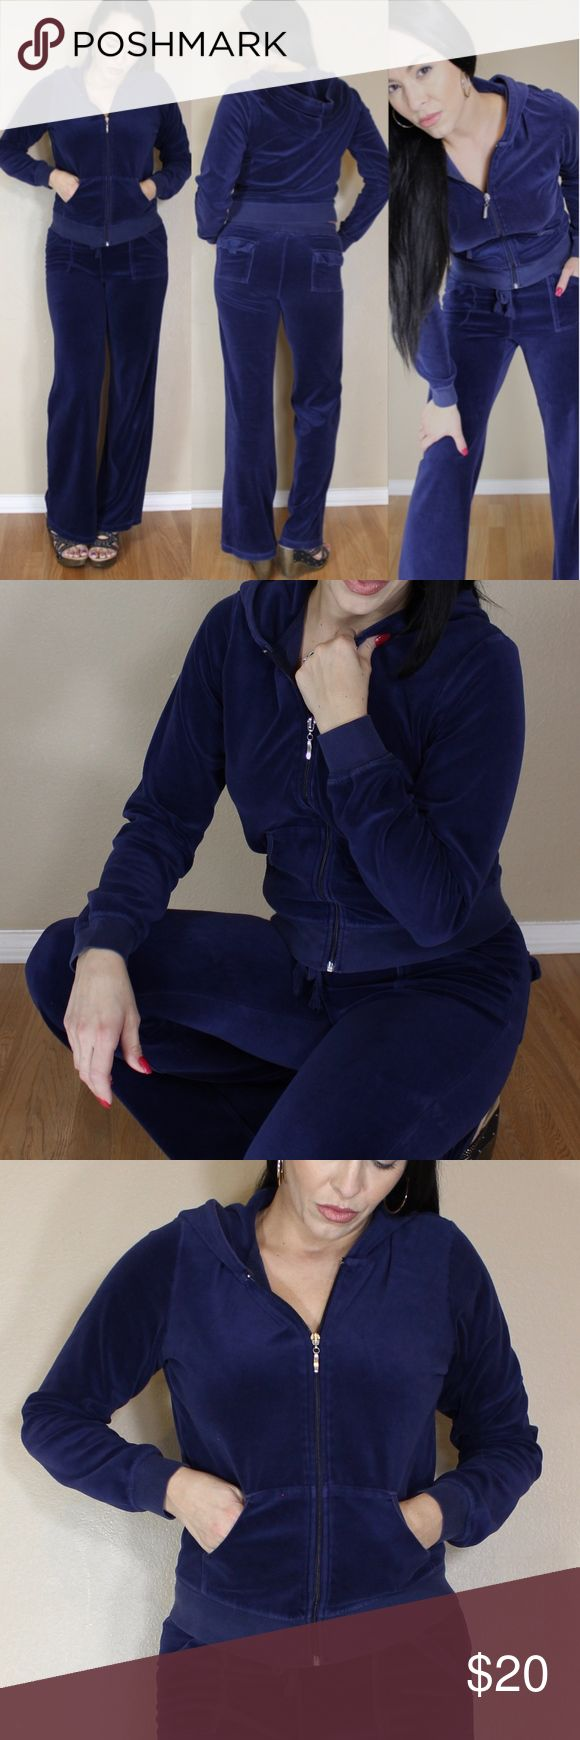 "Velour Jumpsuits Sweats Hoodie Set Comfy cozy Womens Velour jumpsuit track suit set.  Comes with pants and zippered hoodie.  Pants are elasticized with a drawstring and pockets.  Hoodie has zippered front with pockets.  Royal Navy Blue.  Pre-owned in good condition.  Purchased at Hottie World.  Tags are worn however it is a size medium. pants: length 41""/ waist 15"" across    hoodie: length 20""/ bust 17"" across Hottie World Pants Jumpsuits & Rompers"